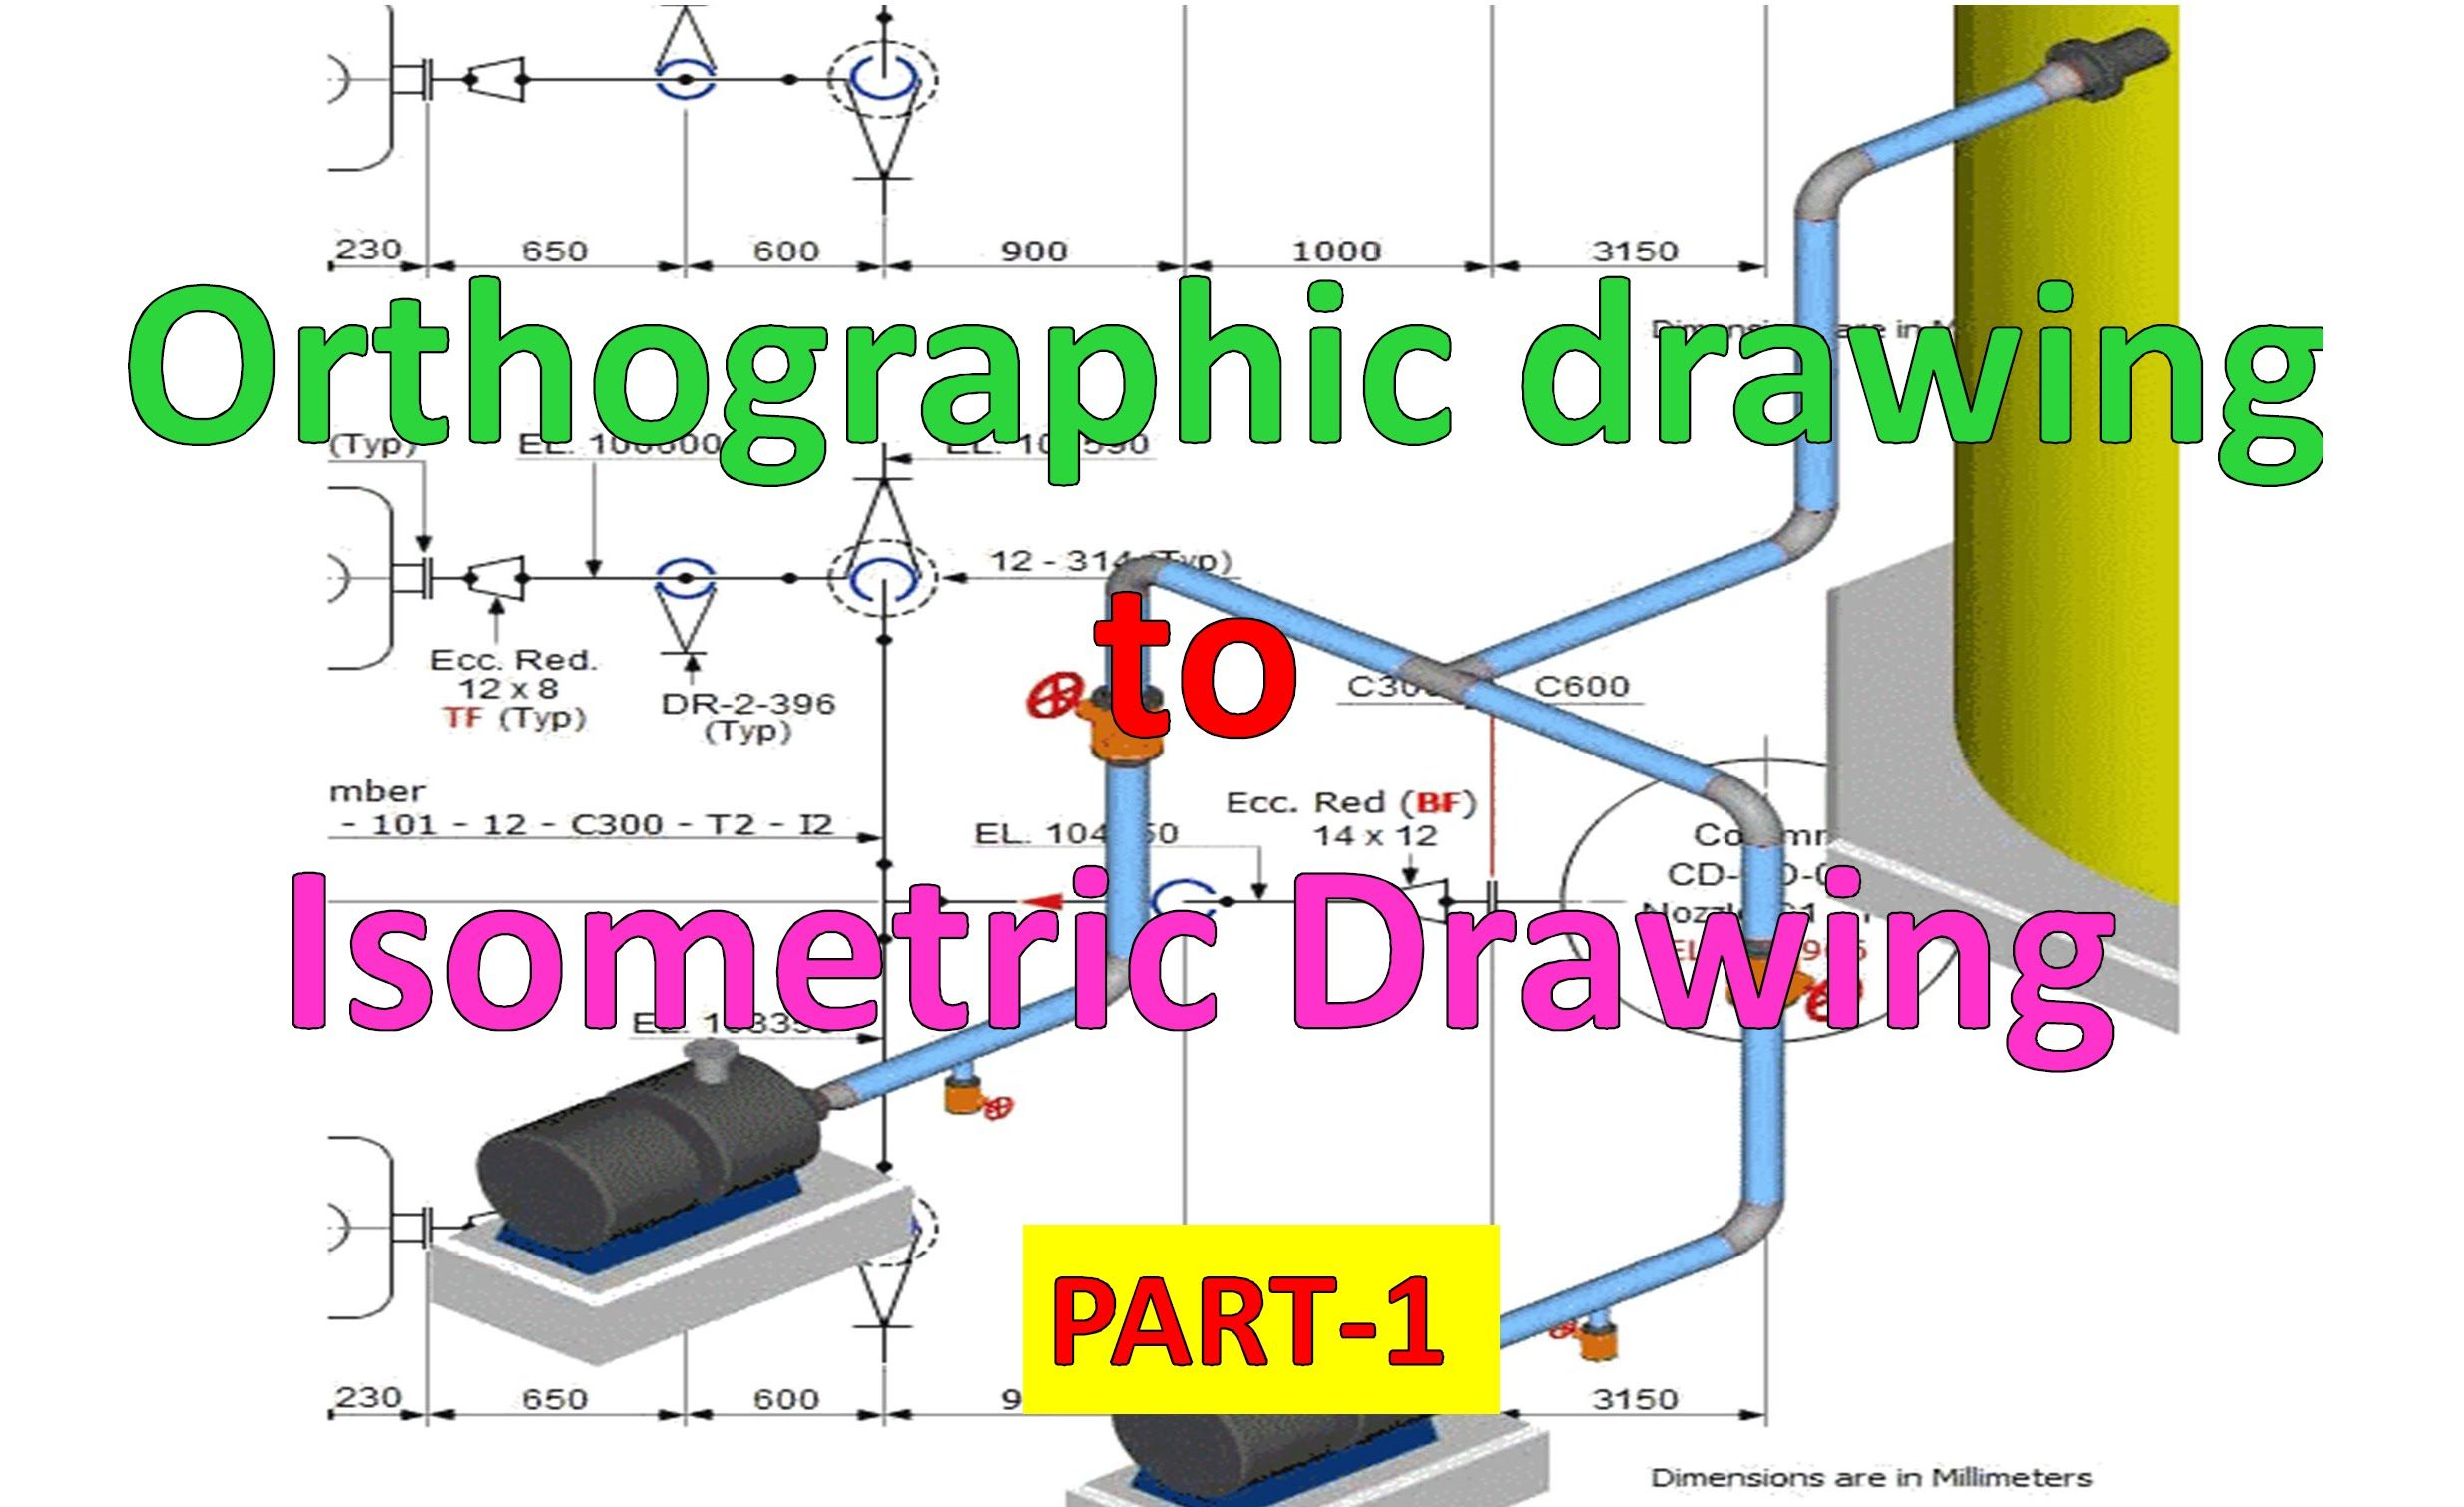 2469x1510 Piping Draw Isometric Drawing From Orthographic Drawing Part 1